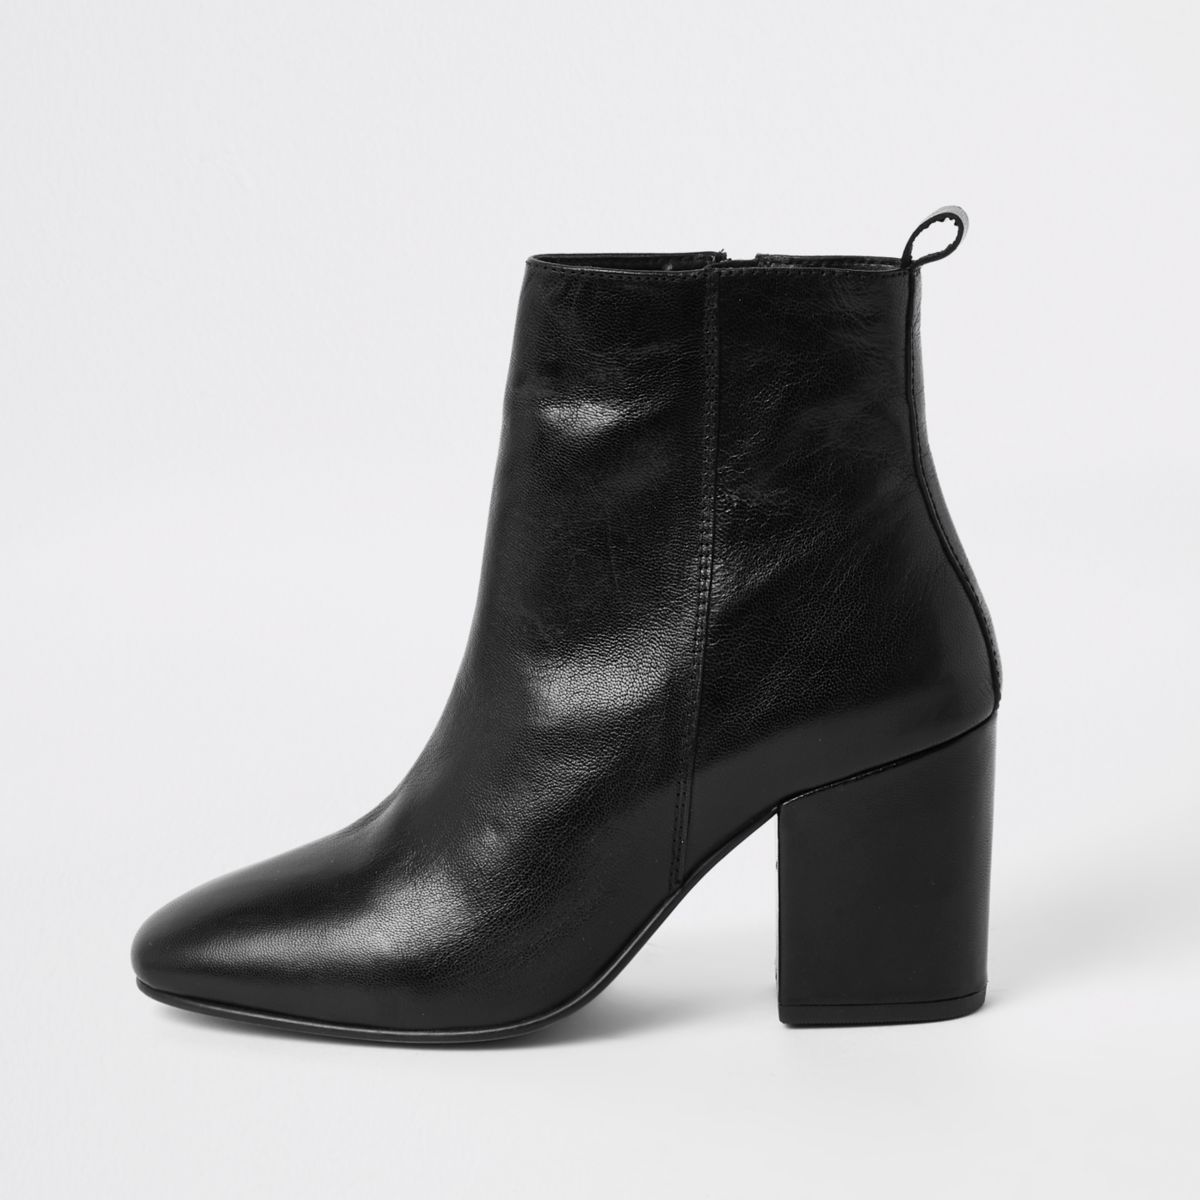 Black leather square toe boots